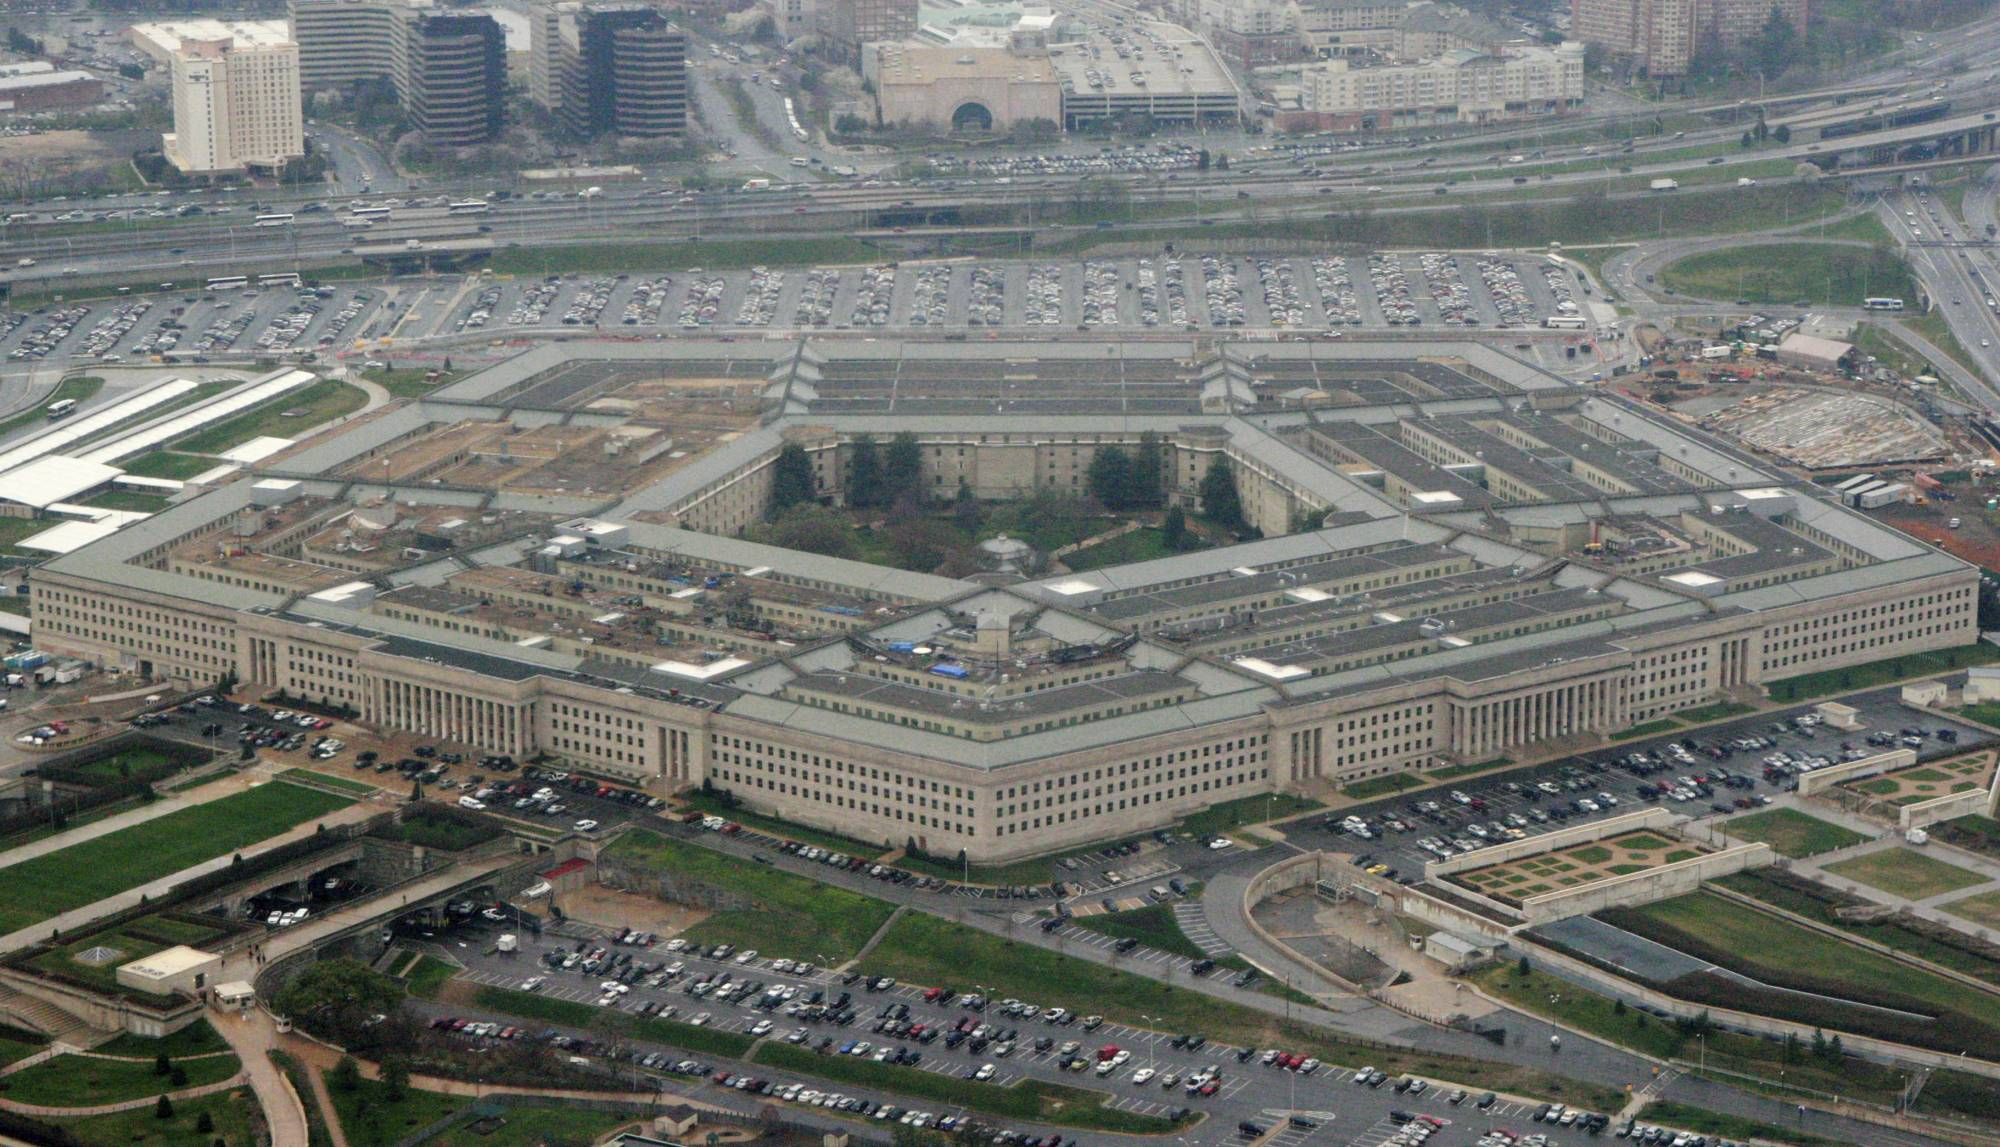 FILE - This March 27, 2008 file photo shows the Pentagon in Washington. A Senate committee abruptly canceled a confirmation hearing Thursday on retired Army Brig. Gen. Anthony Tata's nomination to a top Pentagon post after a furor over offensive remarks he made about Islam and other inflammatory comments. (AP Photo/Charles Dharapak, File)